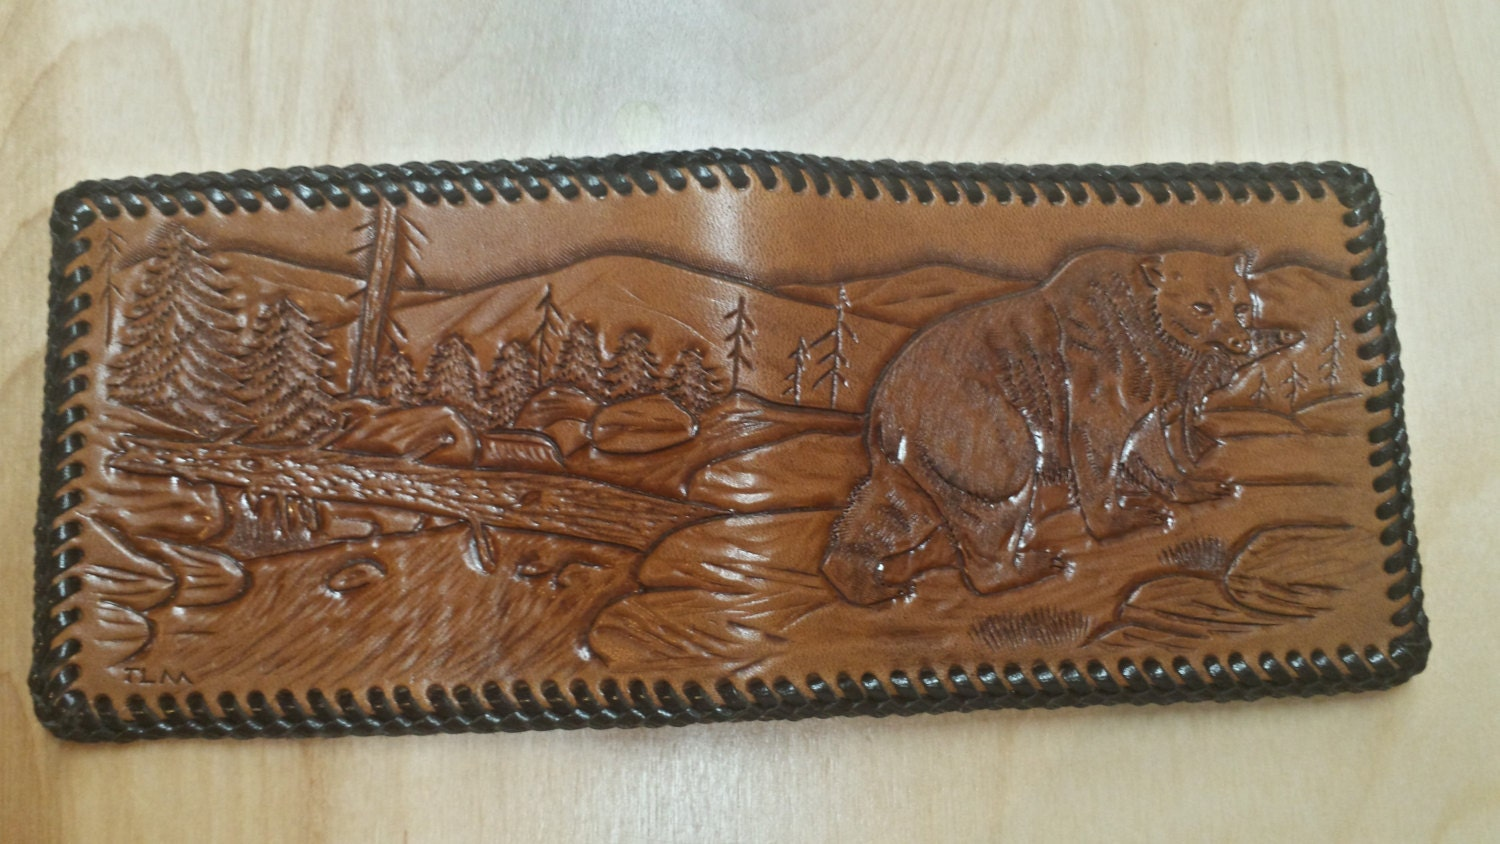 Hand tooled leather wallet carved with a bear scene